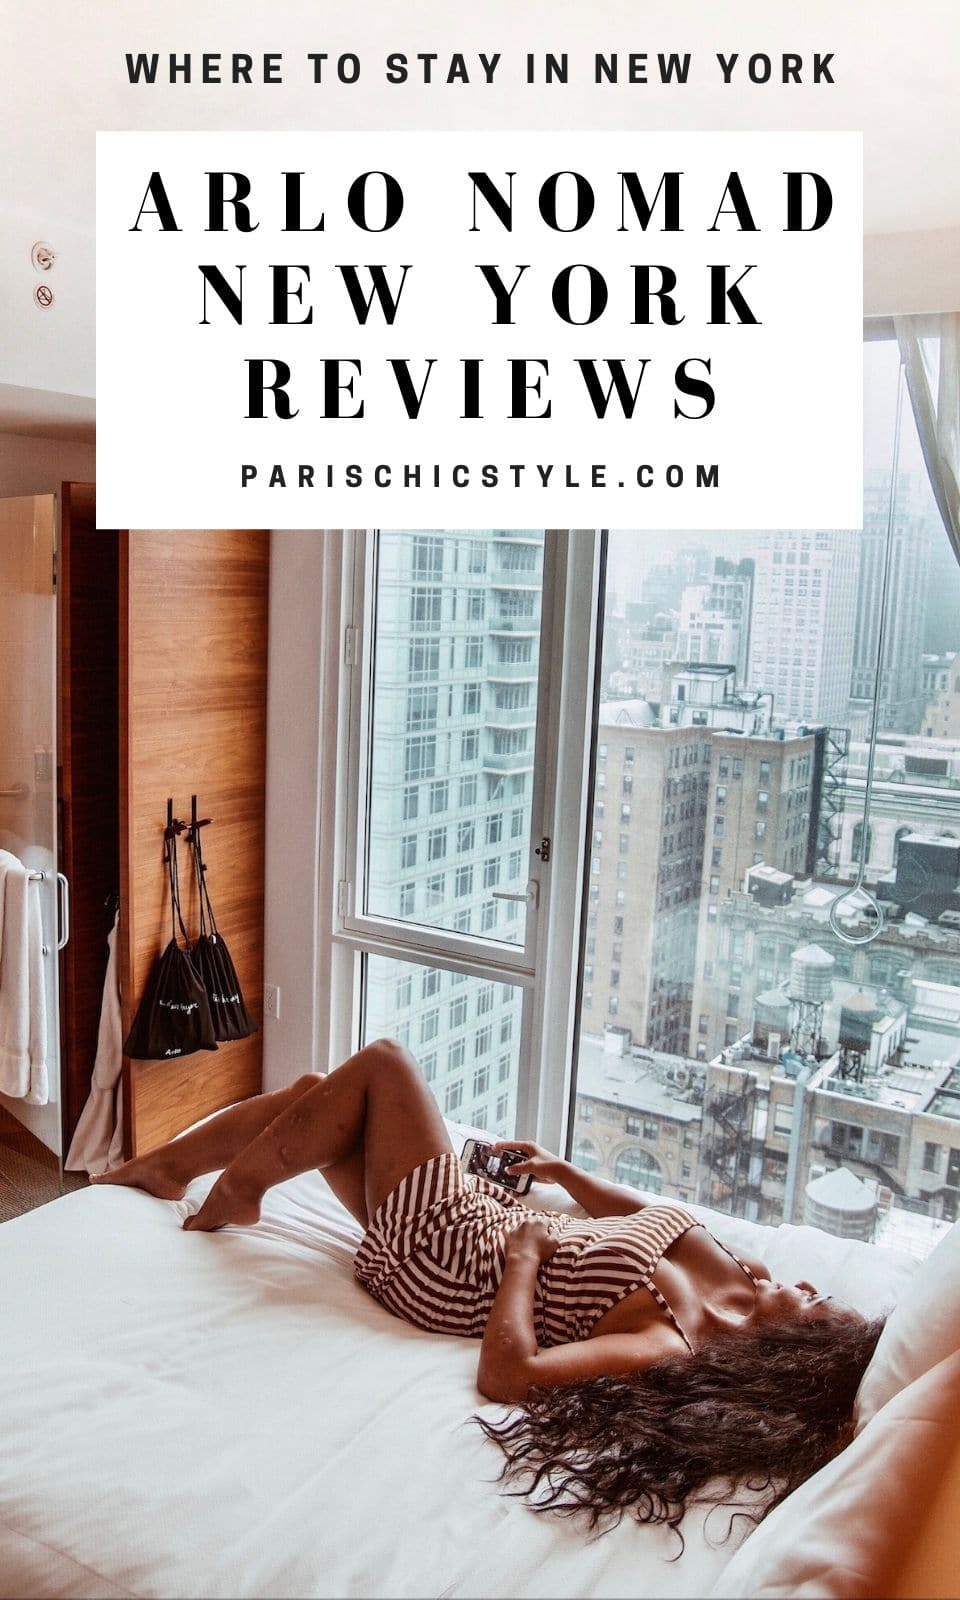 Marjolyn Lago Marj Arlo NoMad New York Hotel Reviews Luxury Where To Stay In New York Paris Chic Style